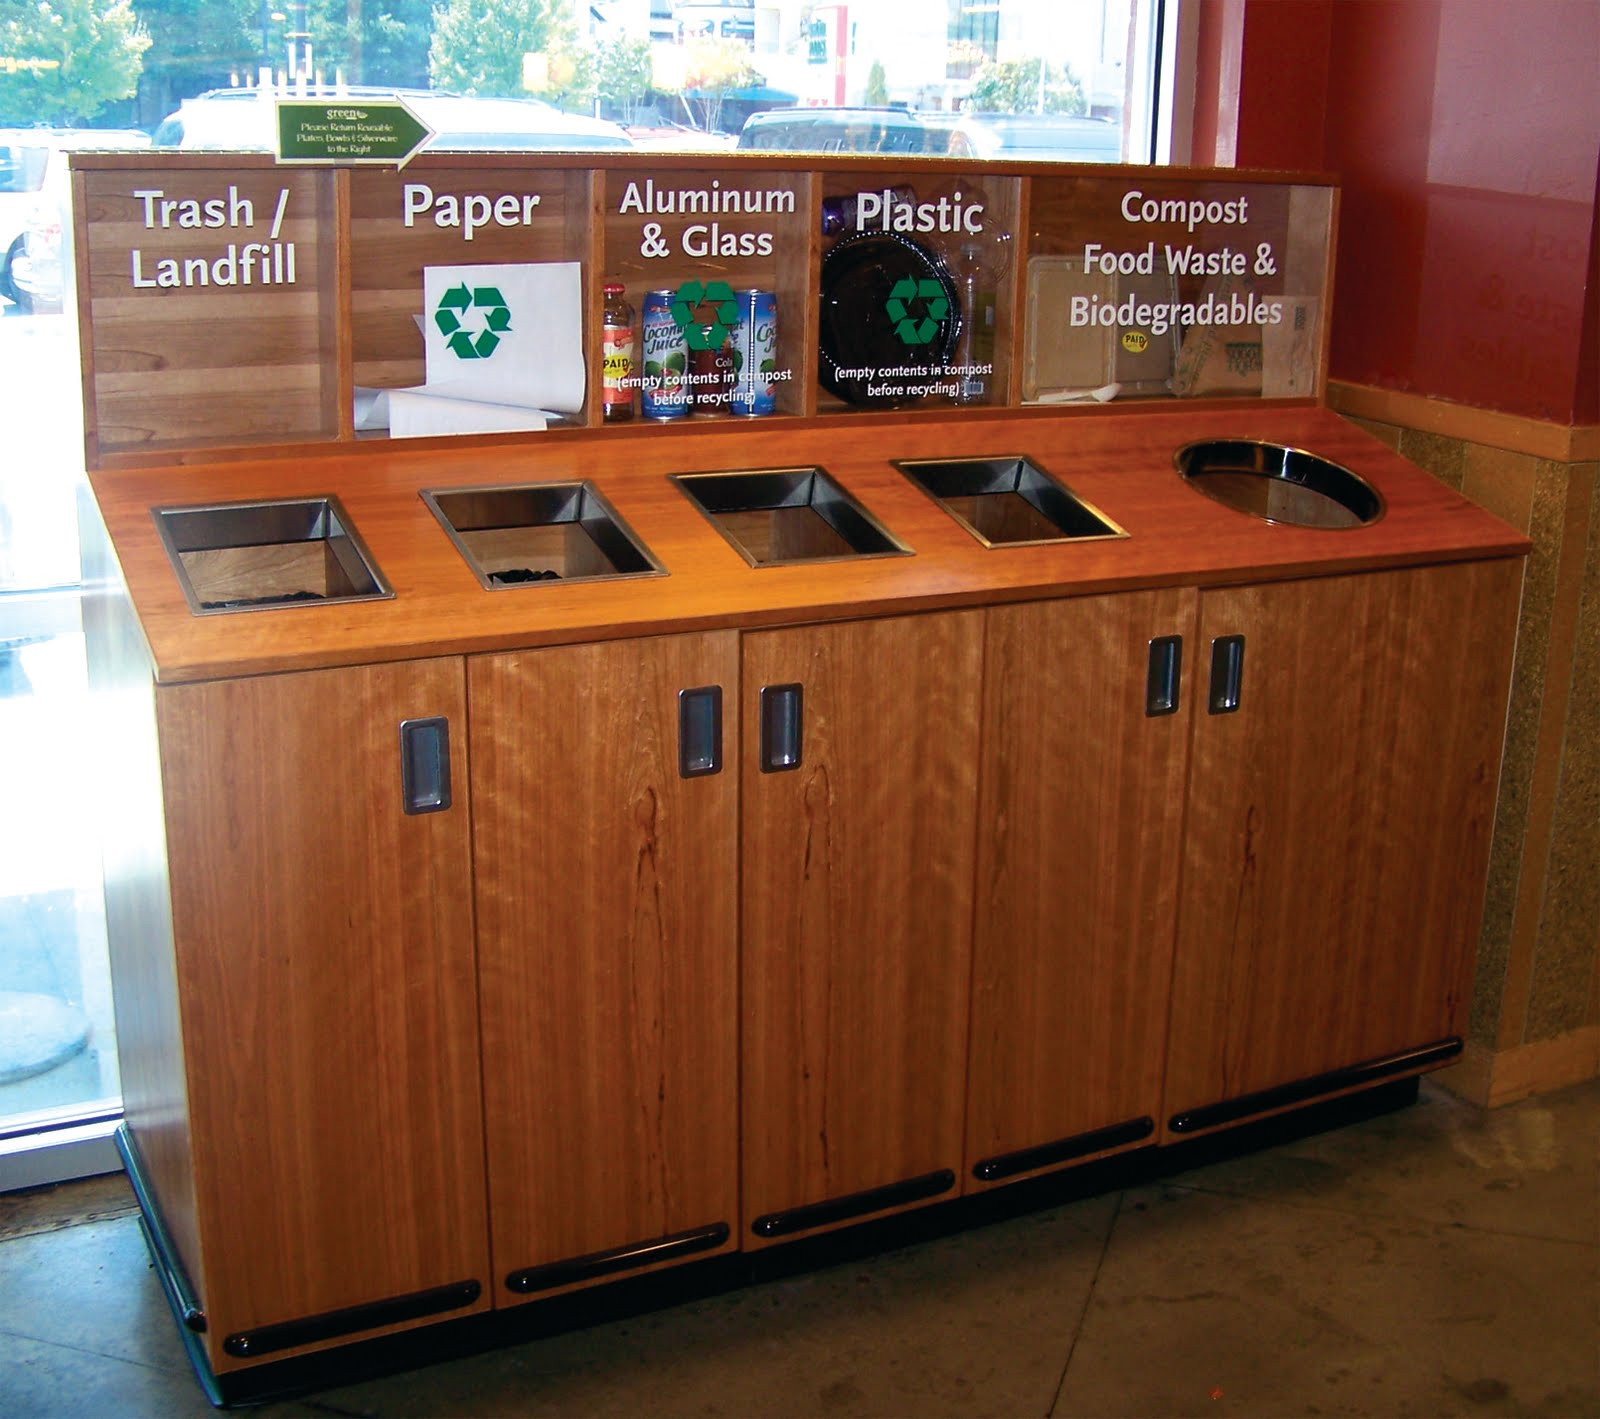 Zero Waste in ACTION: Whole Foods Increases Composting Efforts